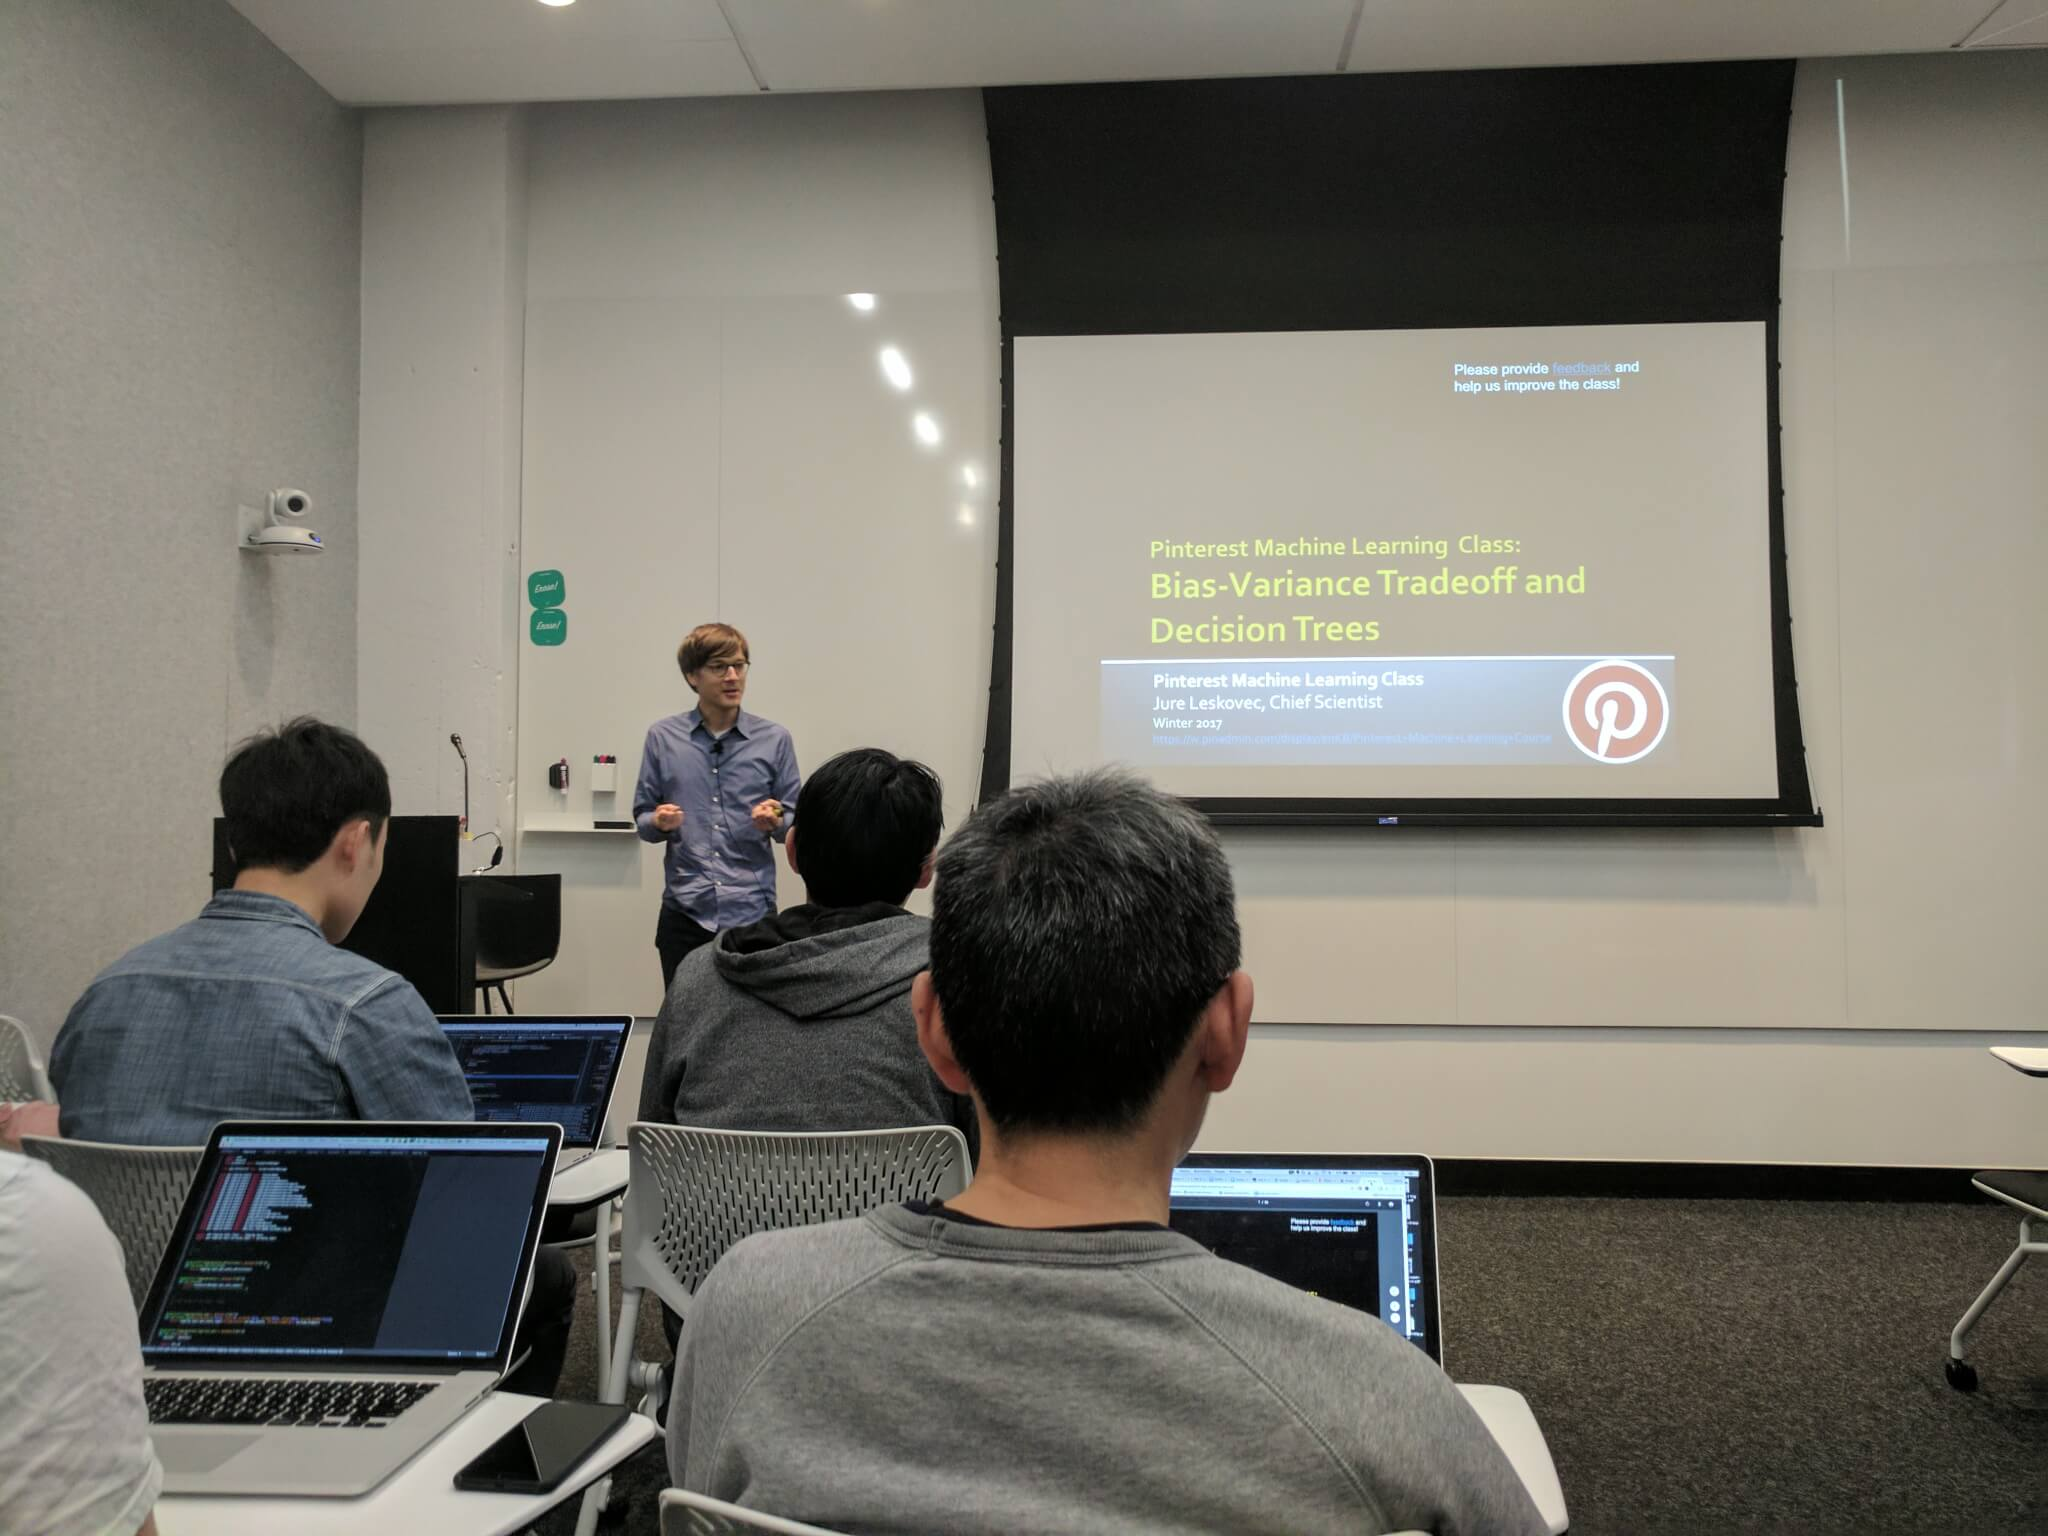 Leskovec teaches a machine learning class for Pinterest employees at company headquarters in San Francisco on February 24.